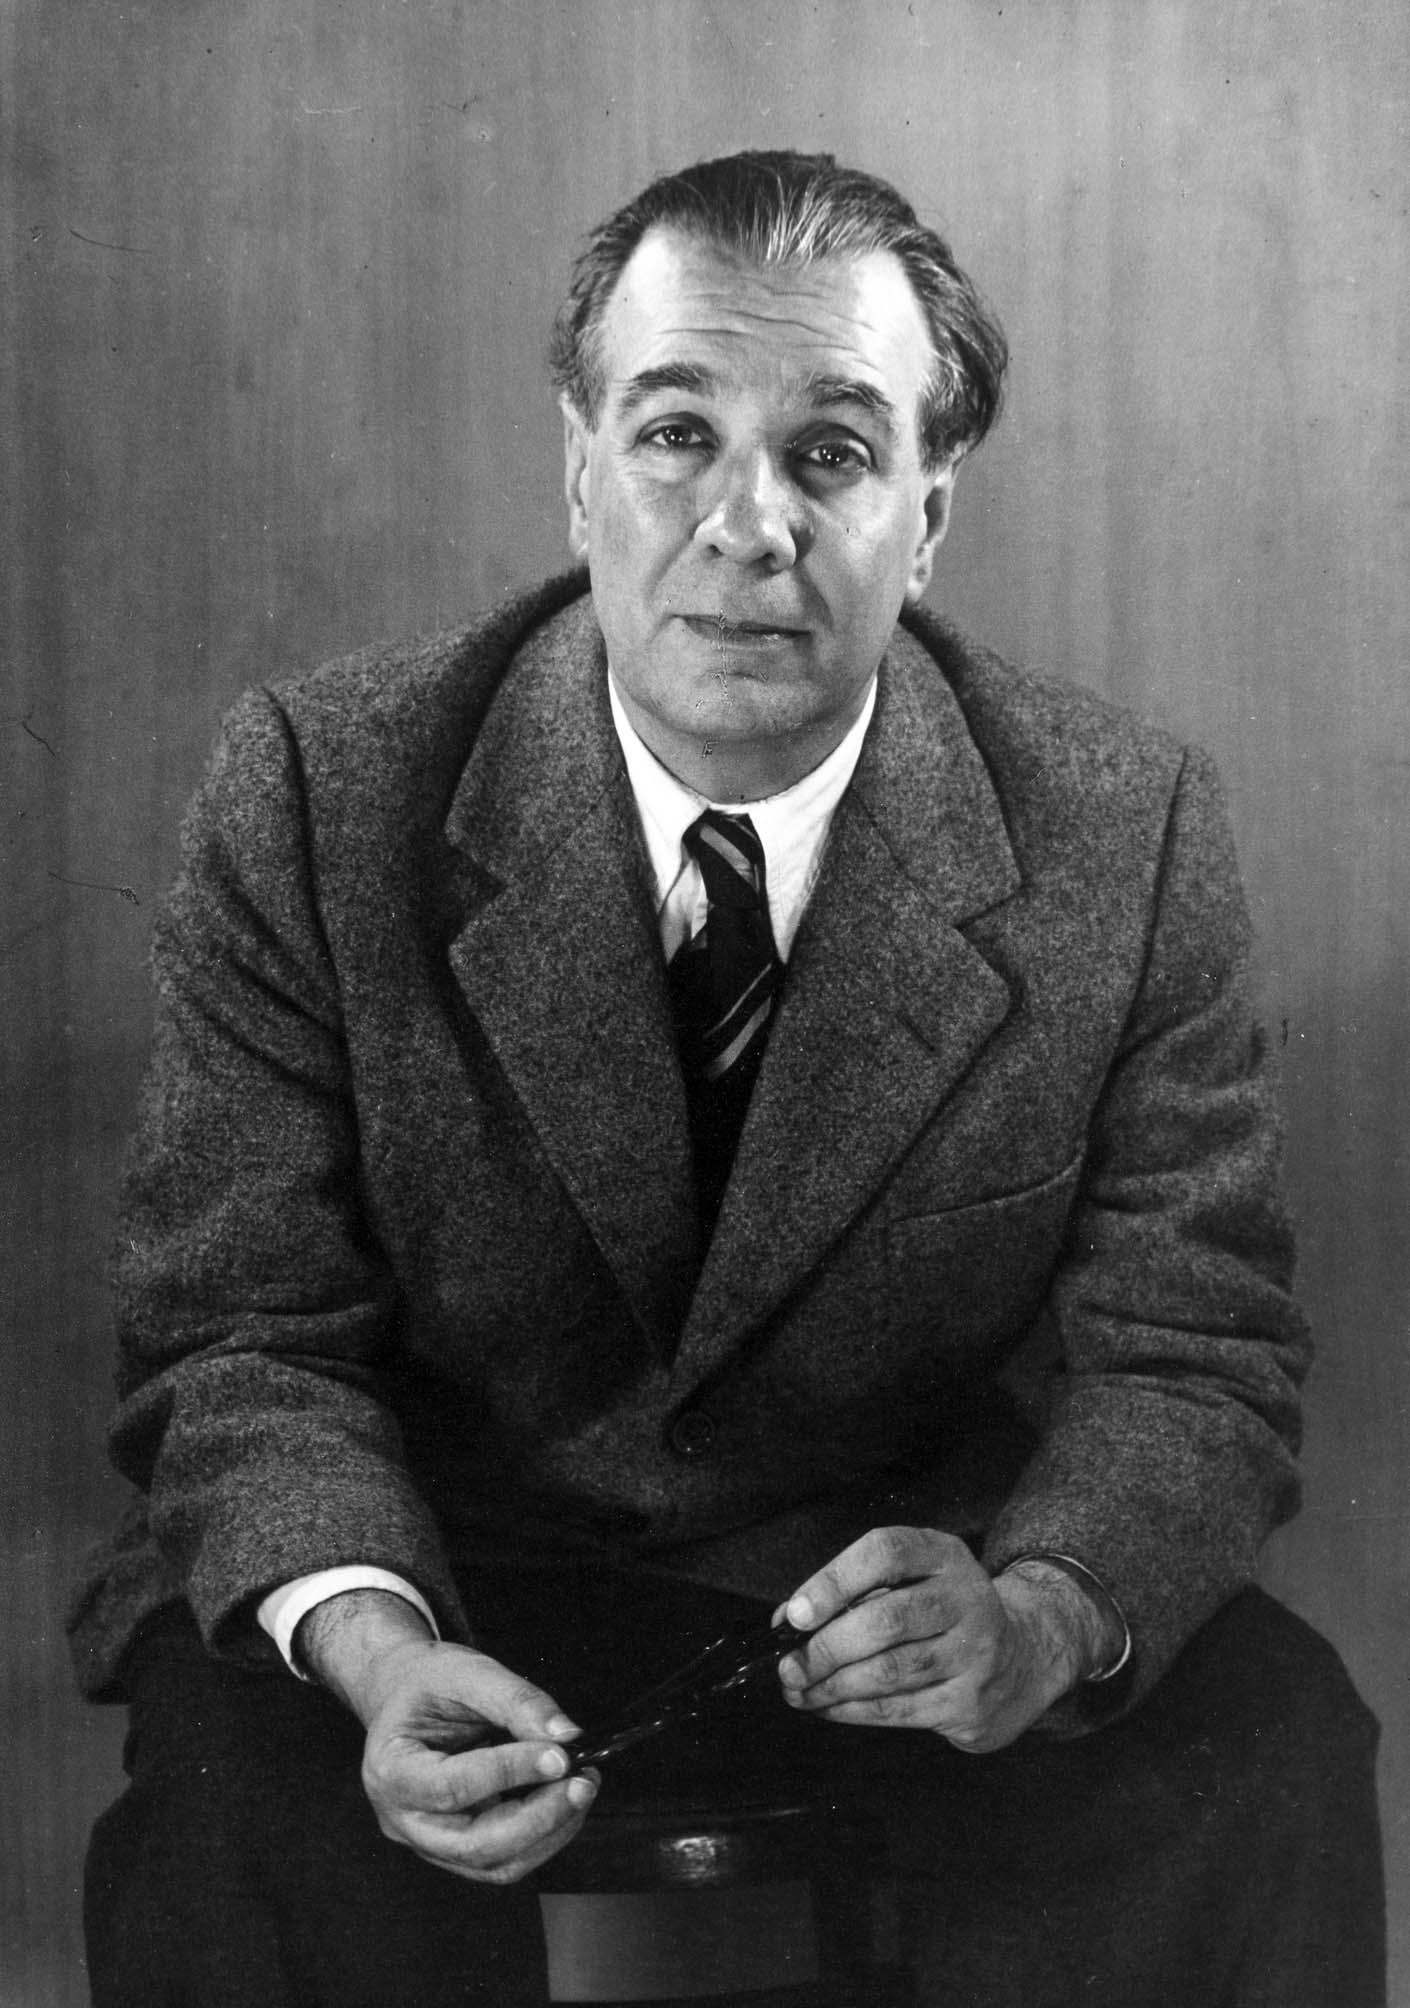 Jorge Luis Borges (Author)